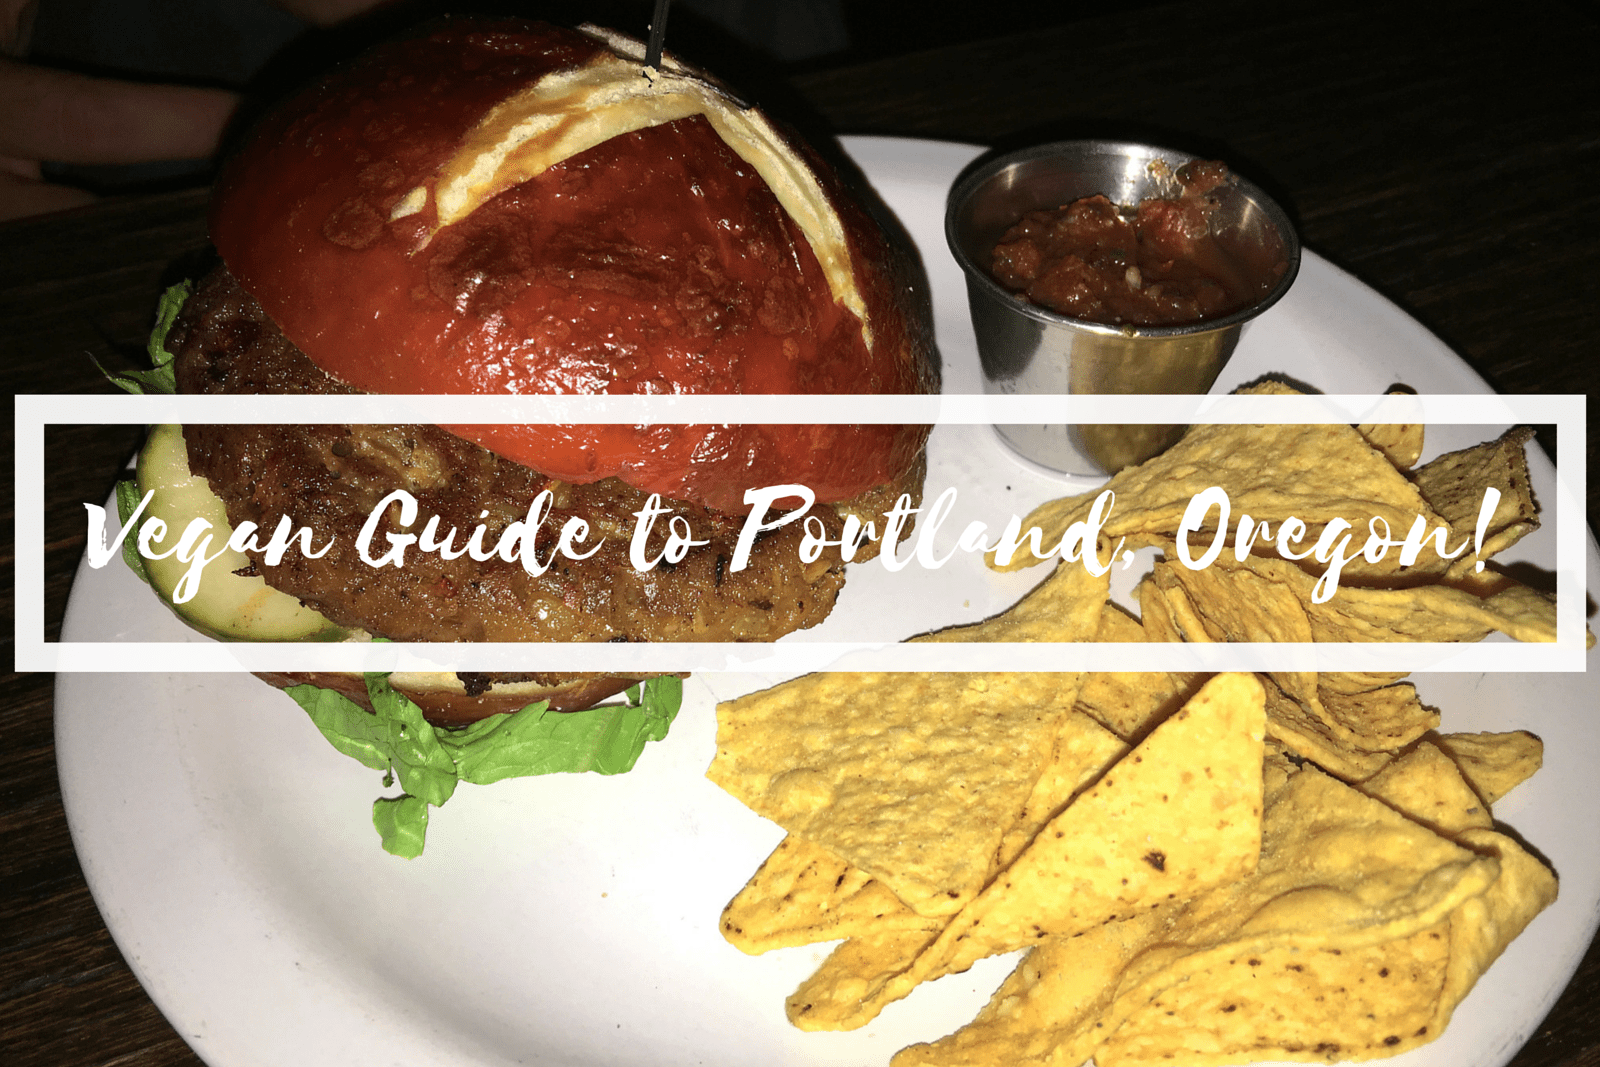 A Vegan Guide to Portland, Oregon